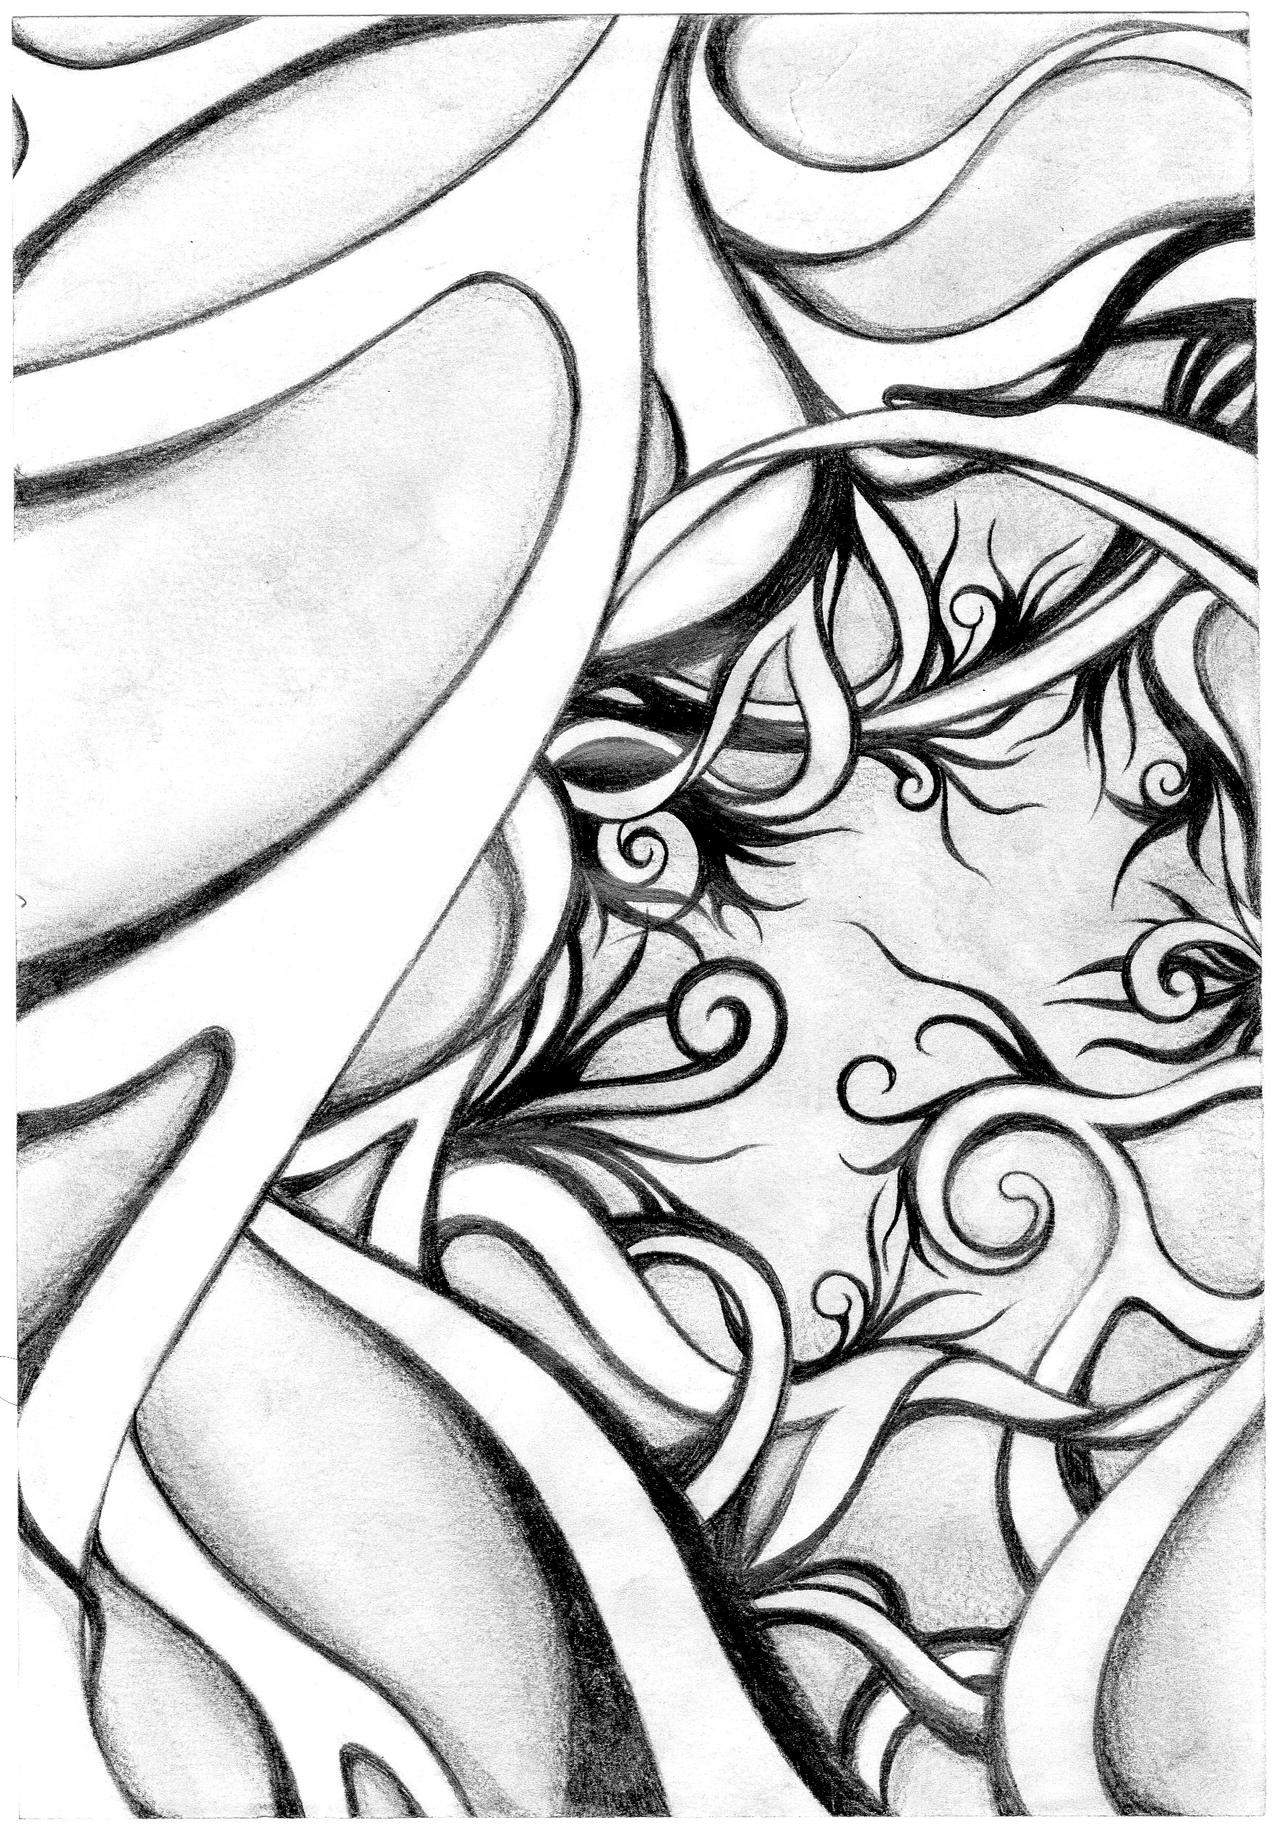 Abstract Line Drawing Artists : Abstract pencil drawing by adrianforoughi on deviantart